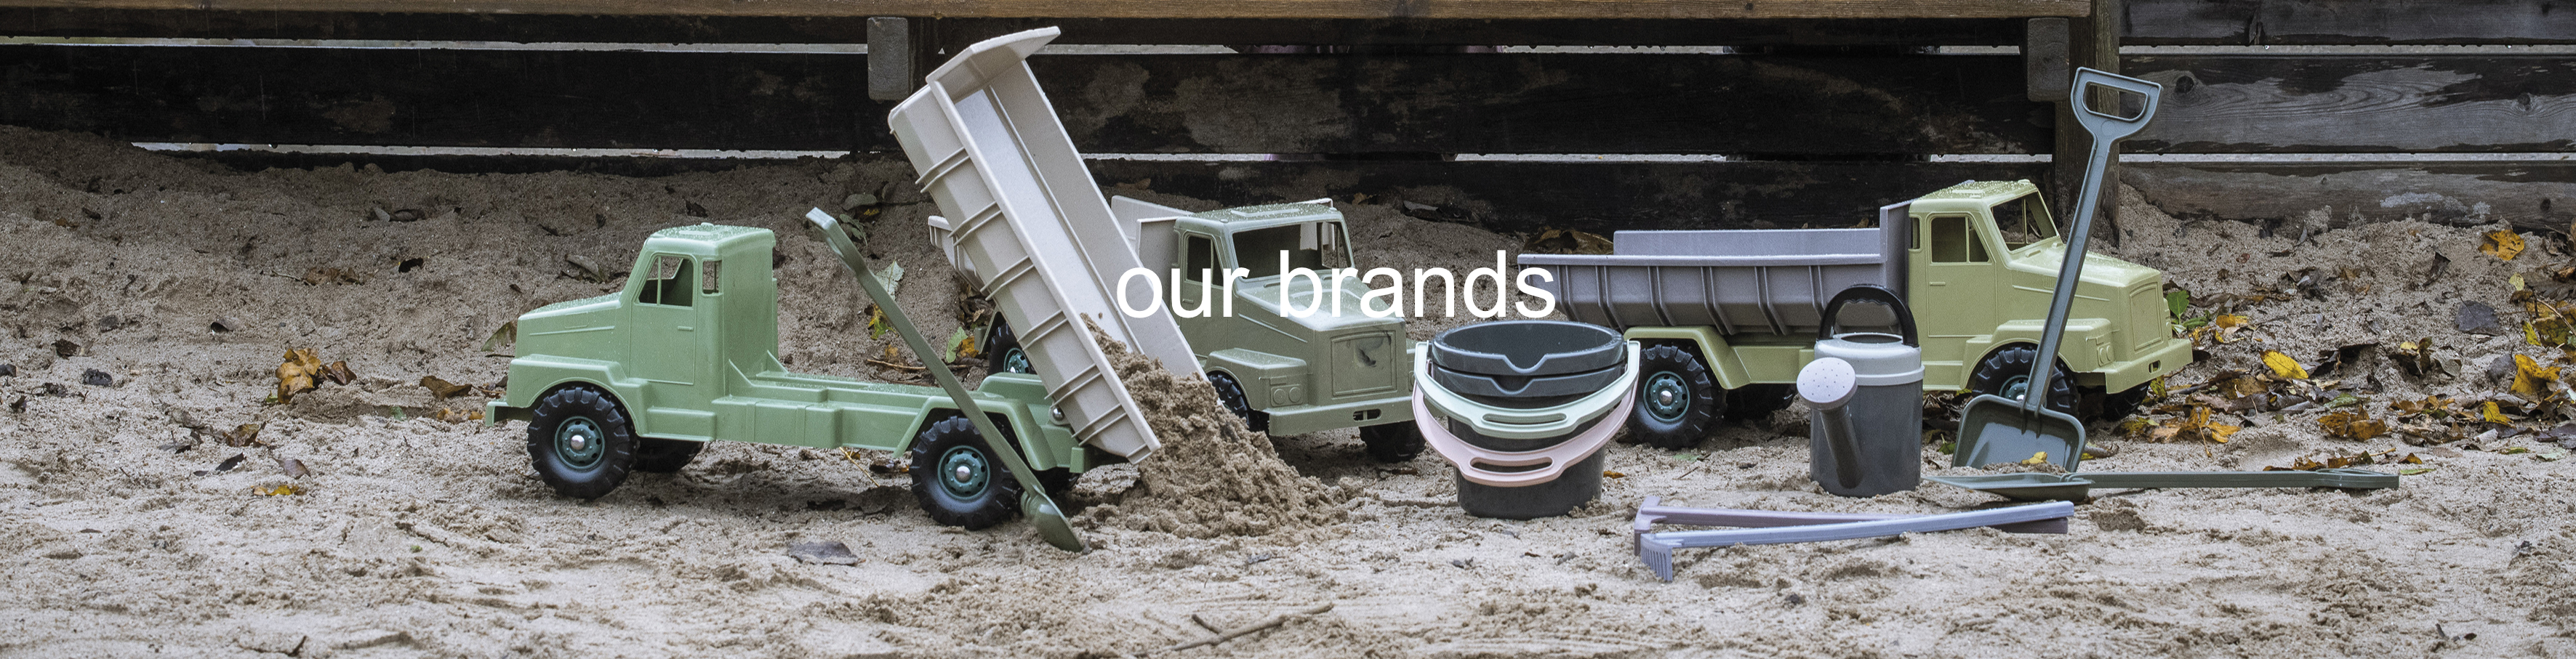 our brands - brands from all over the world are here